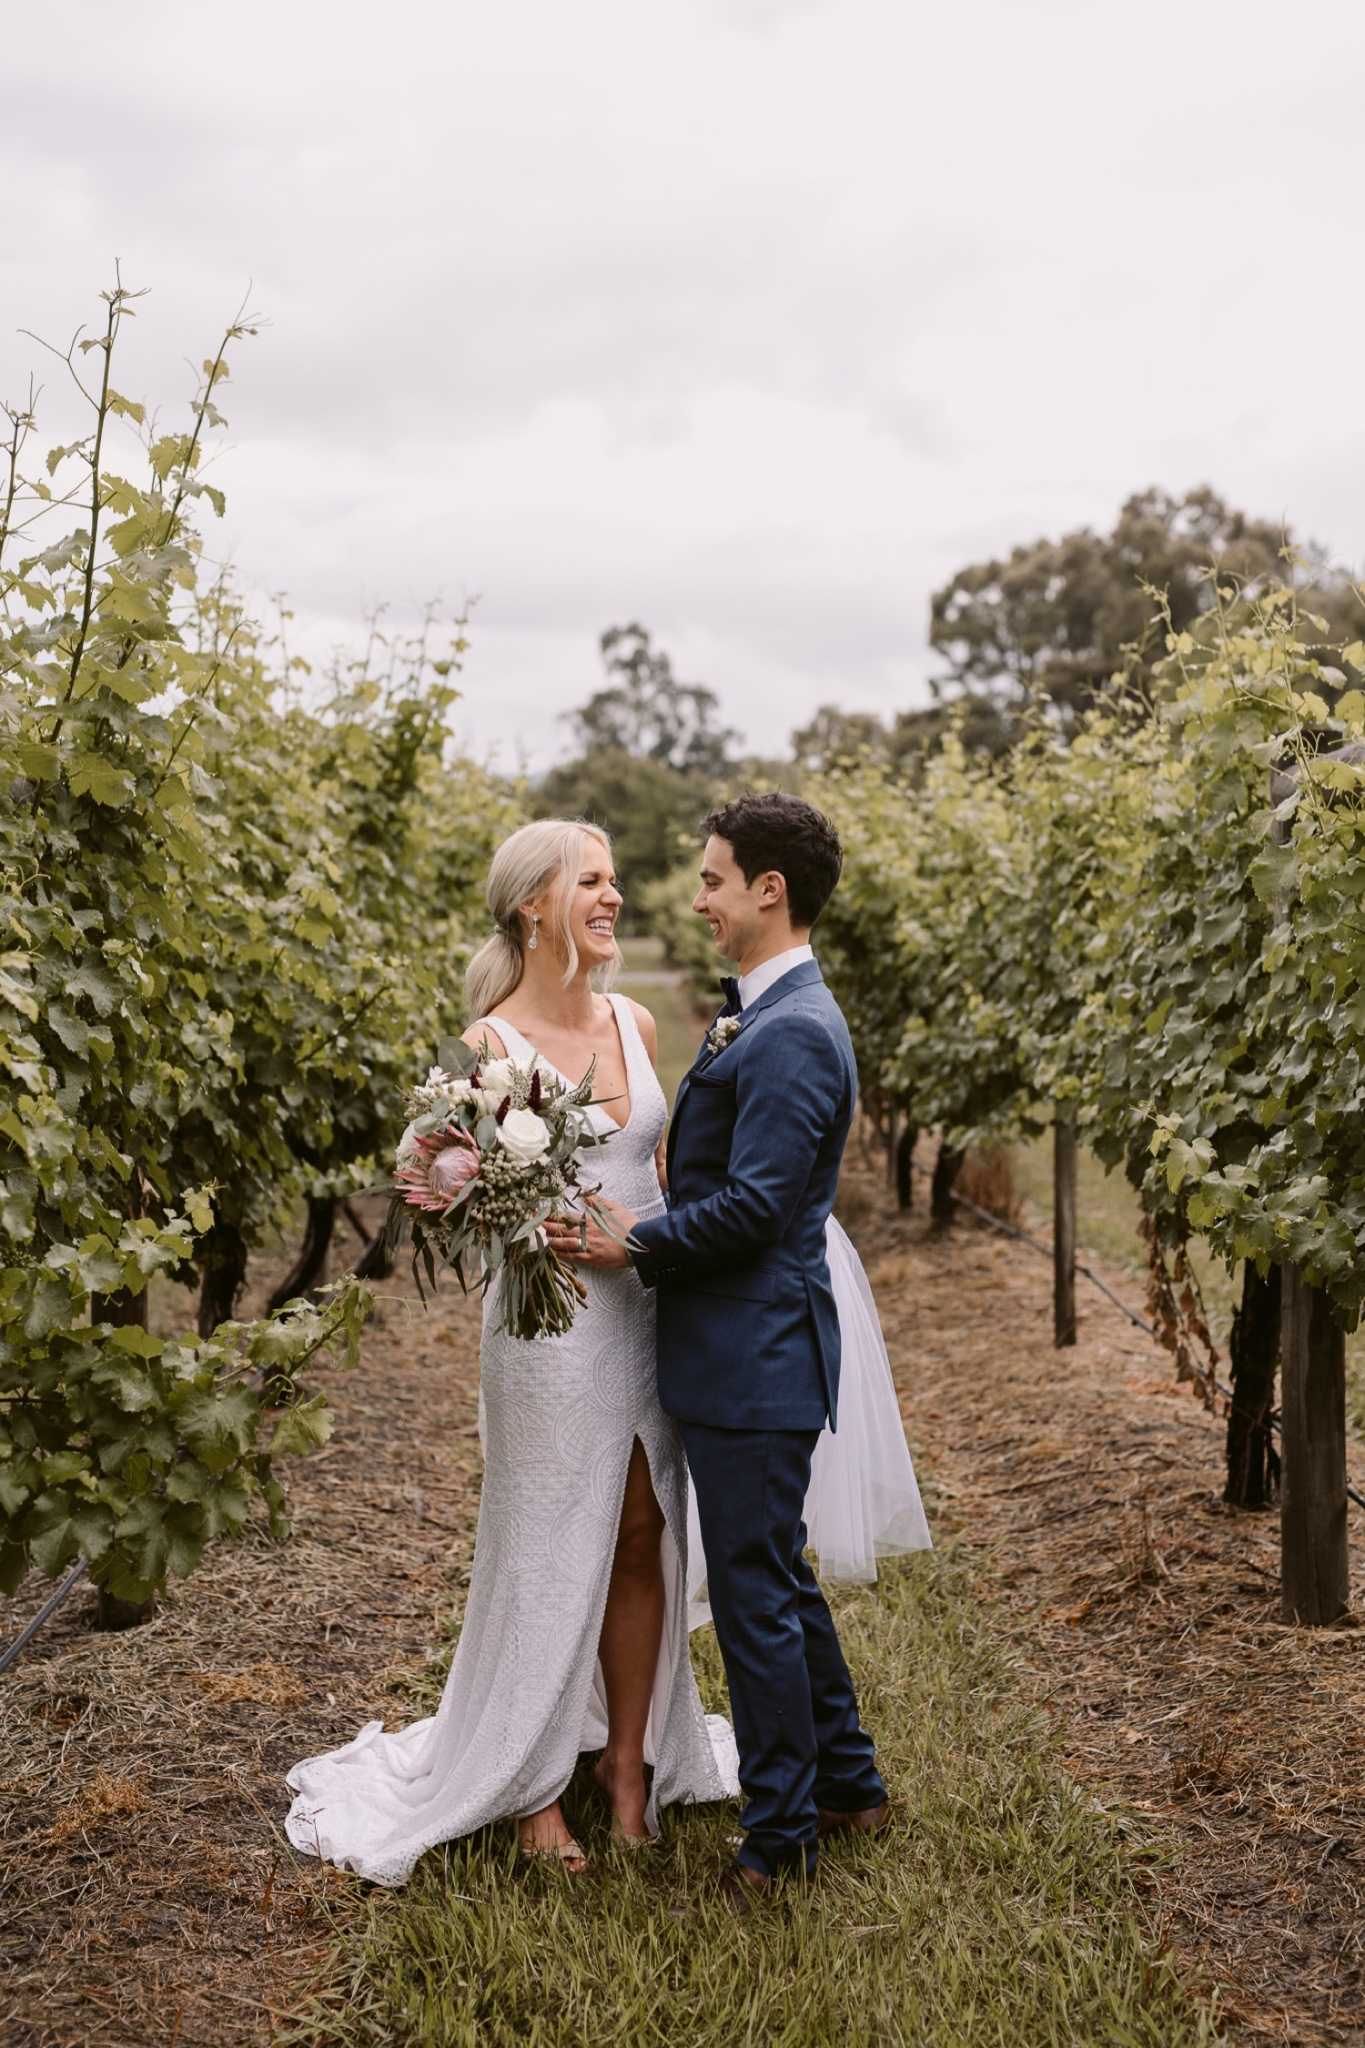 Immerse Yarra Valley Winery Wedding Photography80.jpg